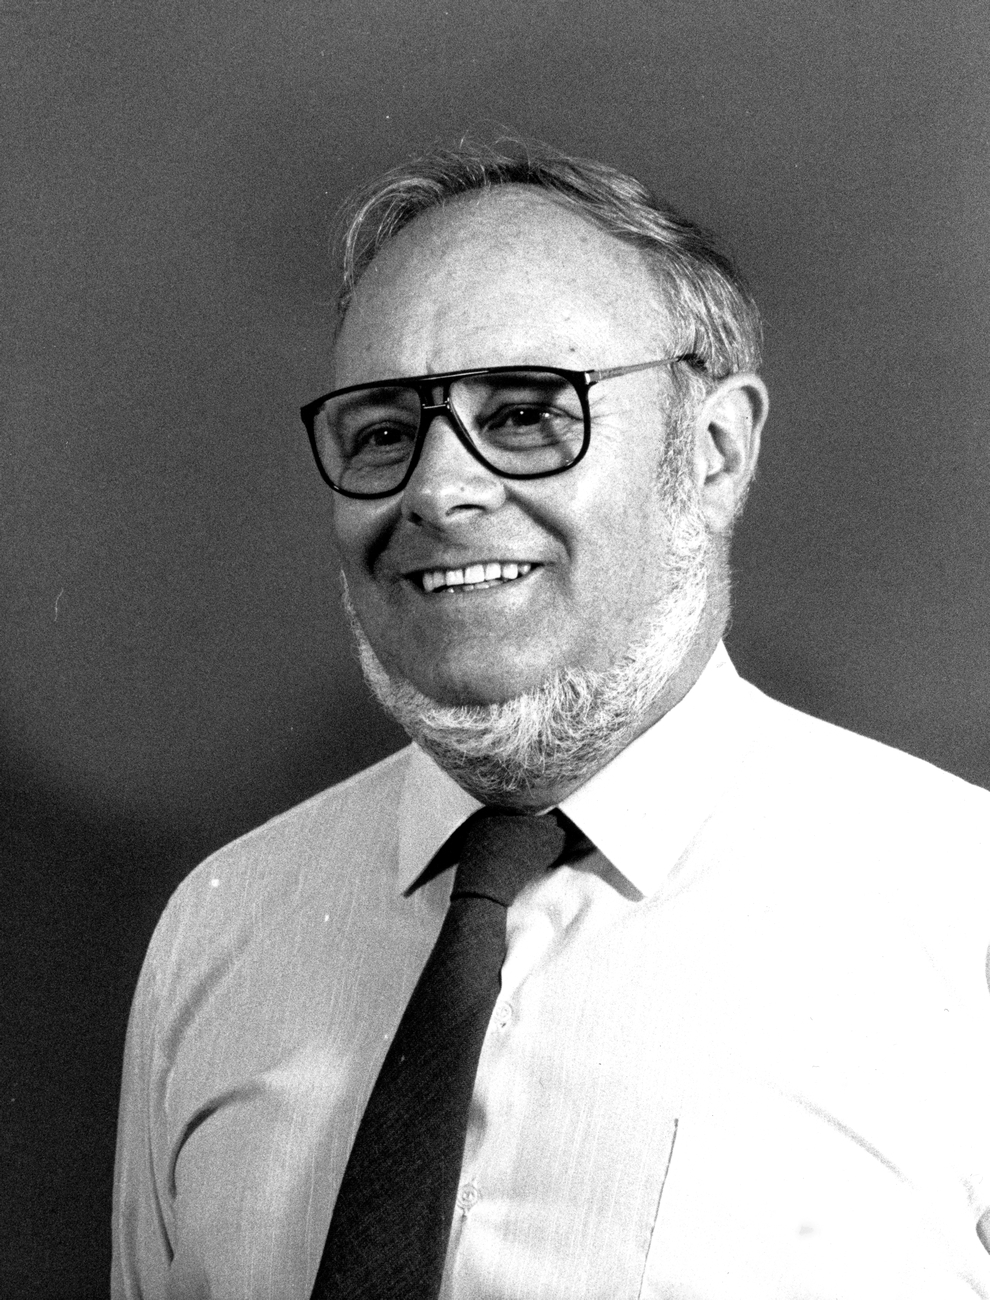 Norm Barney, inspiring history journalist who left a great legacy